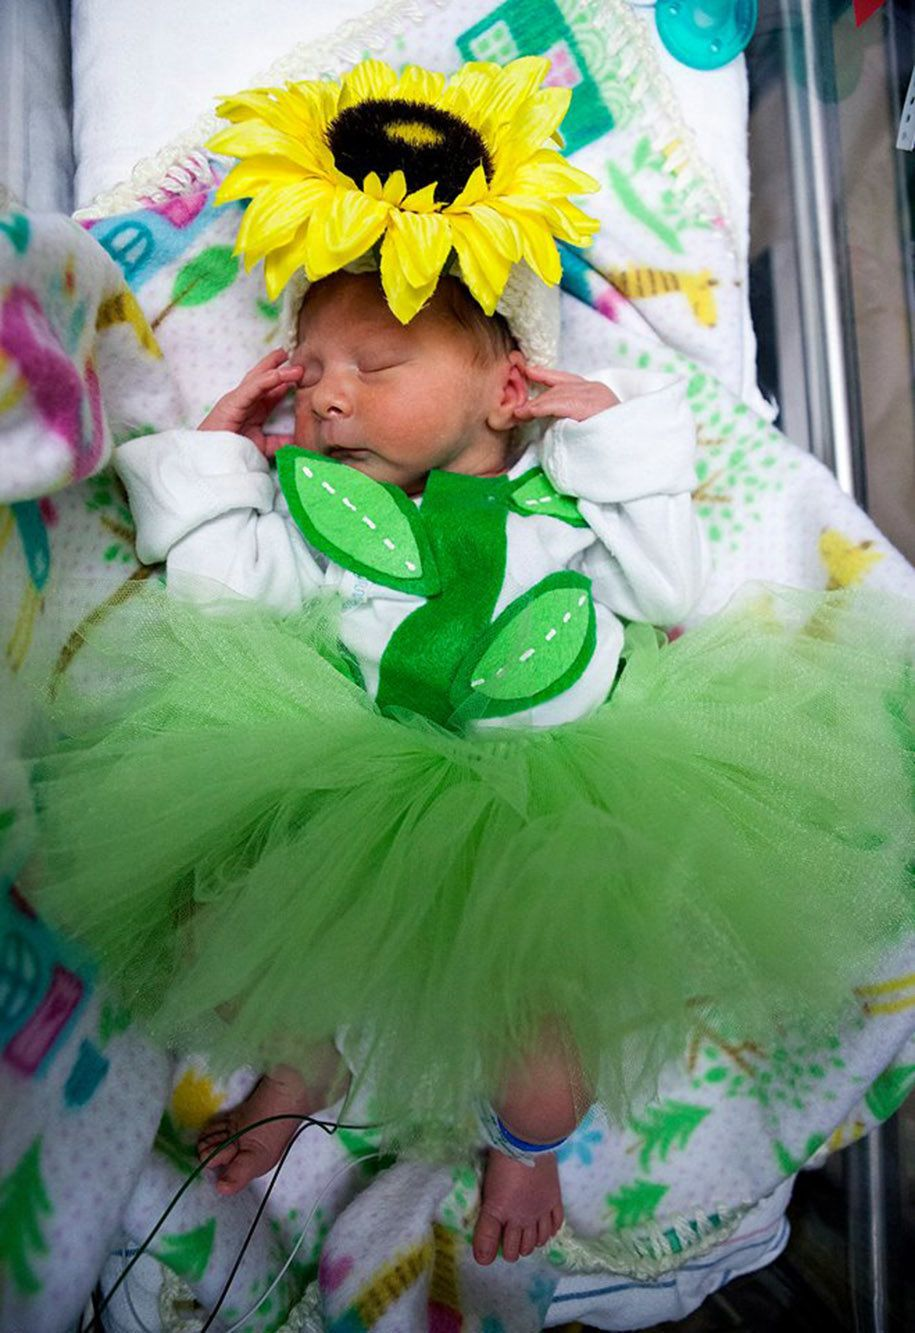 These Awesome NICU Nurses Made Halloween Costumes For Their Preemie Patients | HuffPost & These Awesome NICU Nurses Made Halloween Costumes For Their Preemie ...